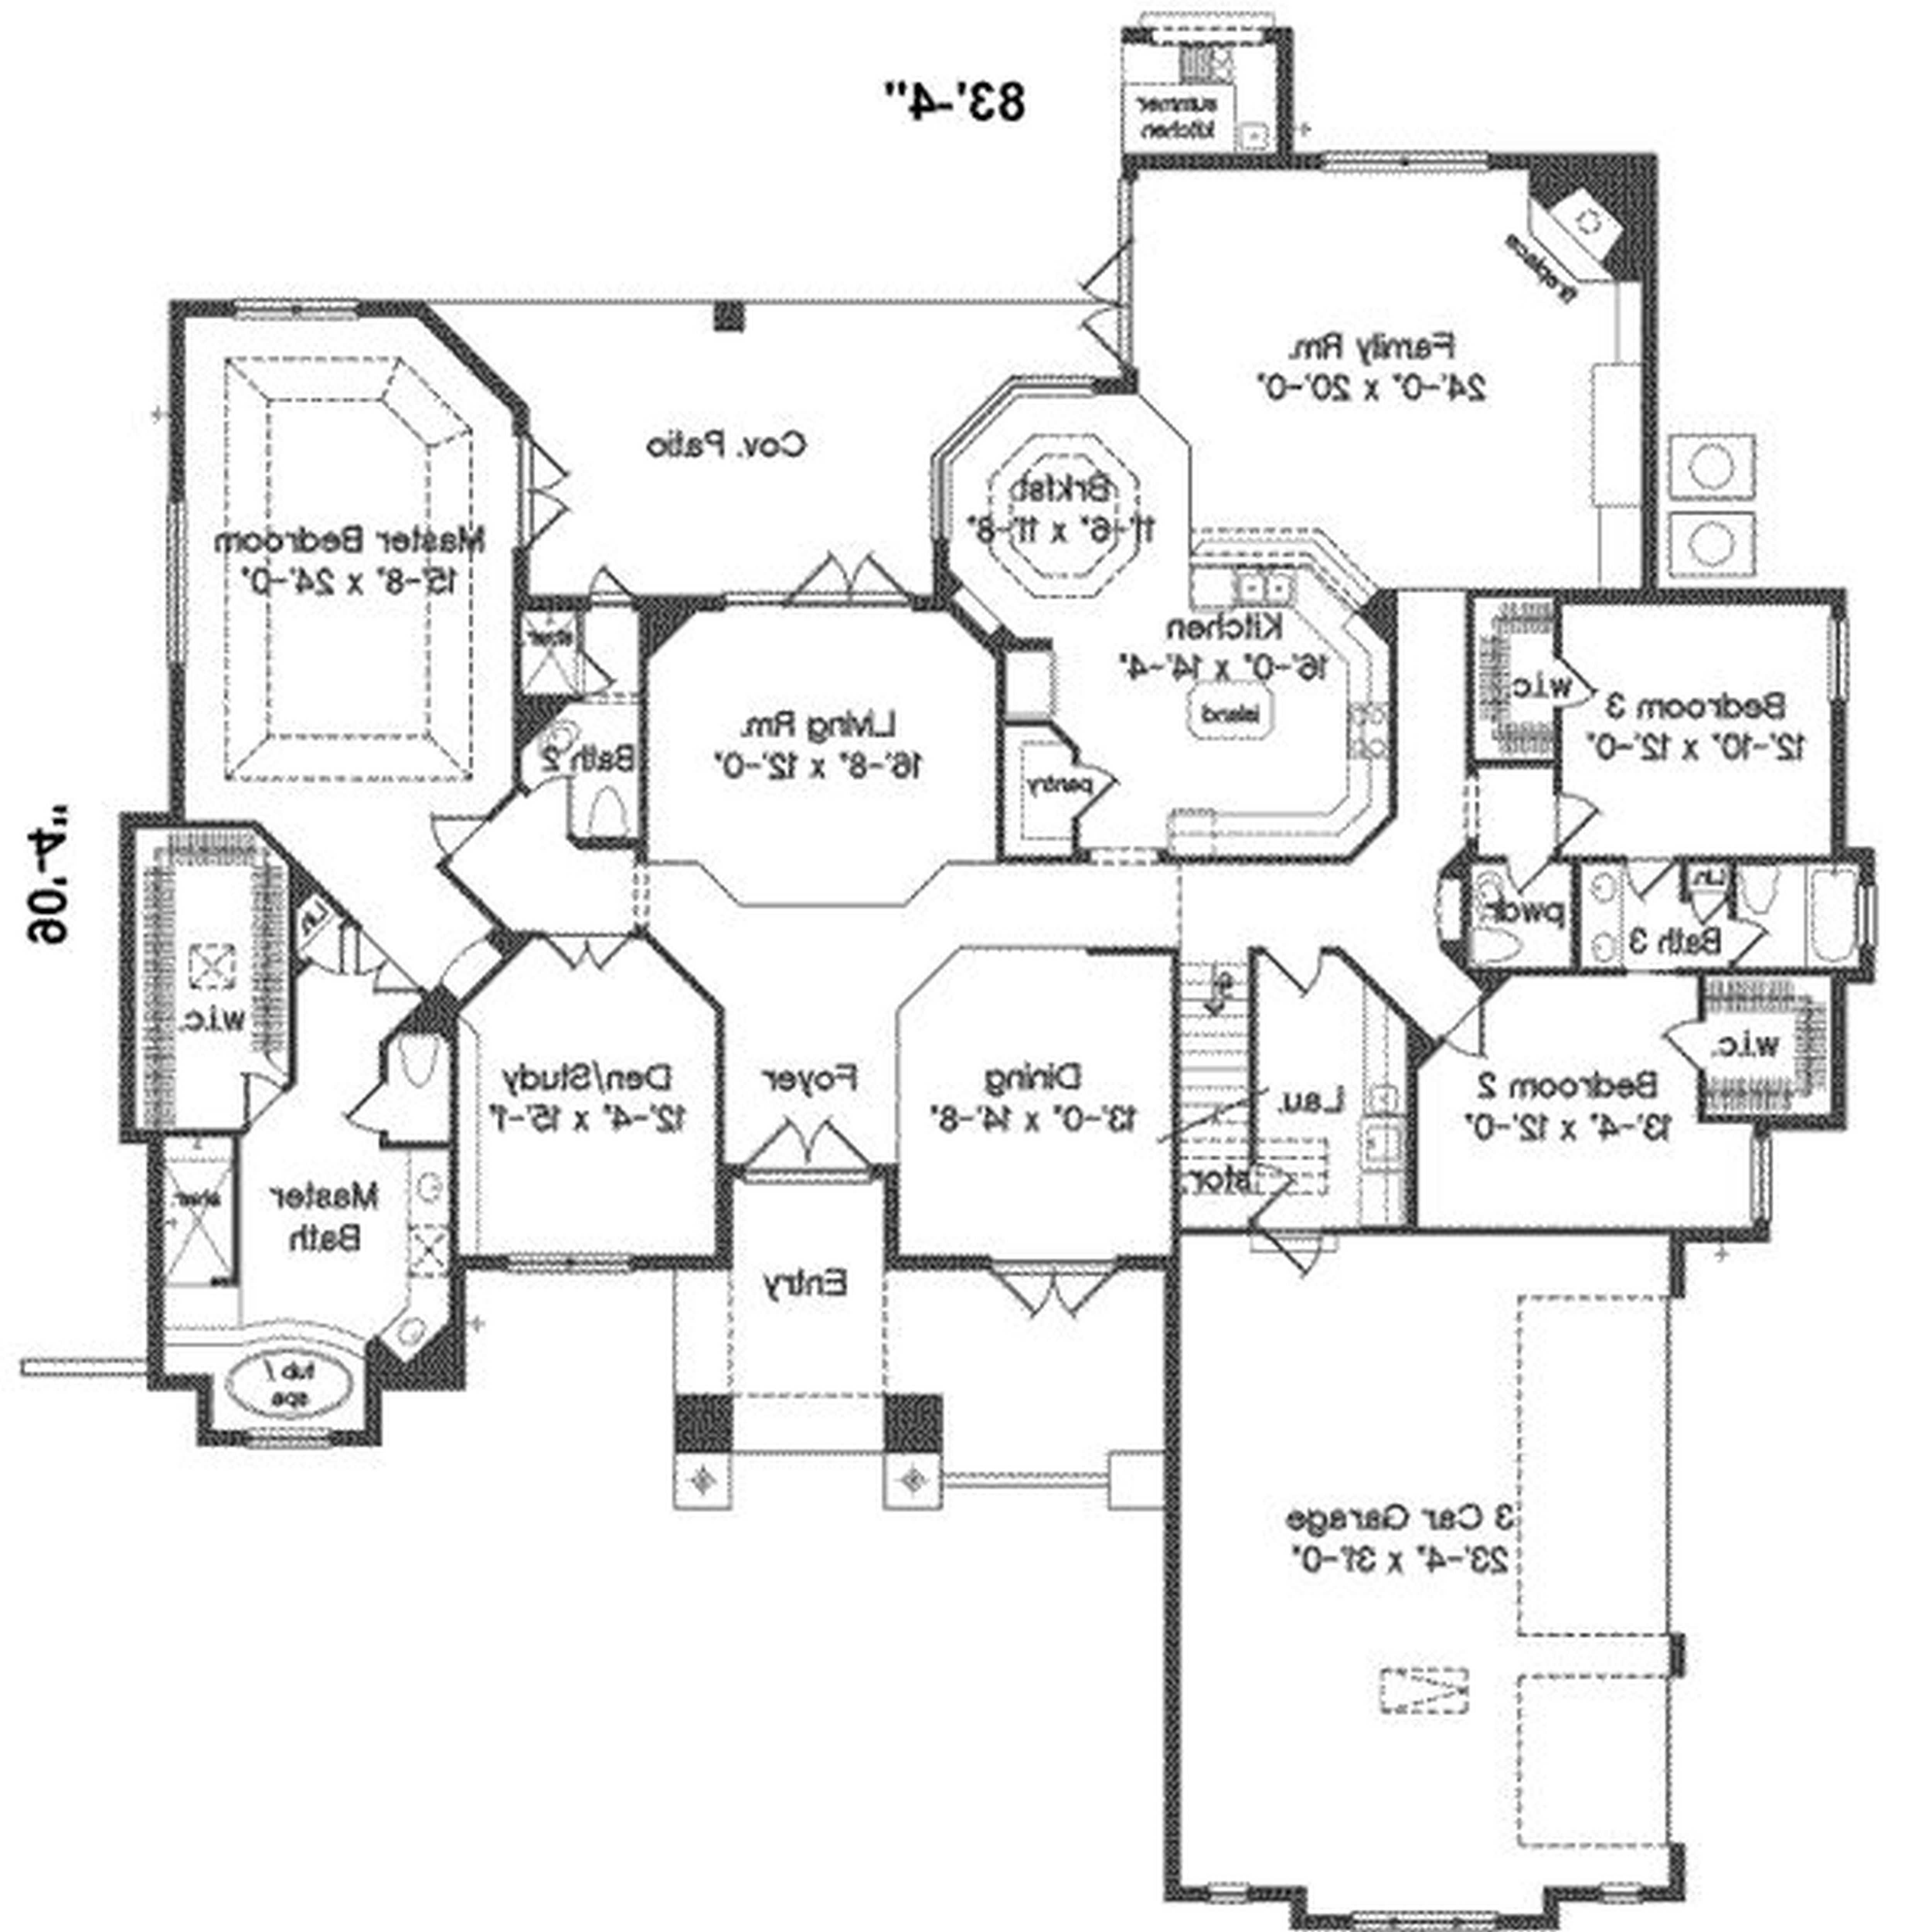 5000x5000 5 Bedroom Modern House Plans Images Gallery Also Designs Picture